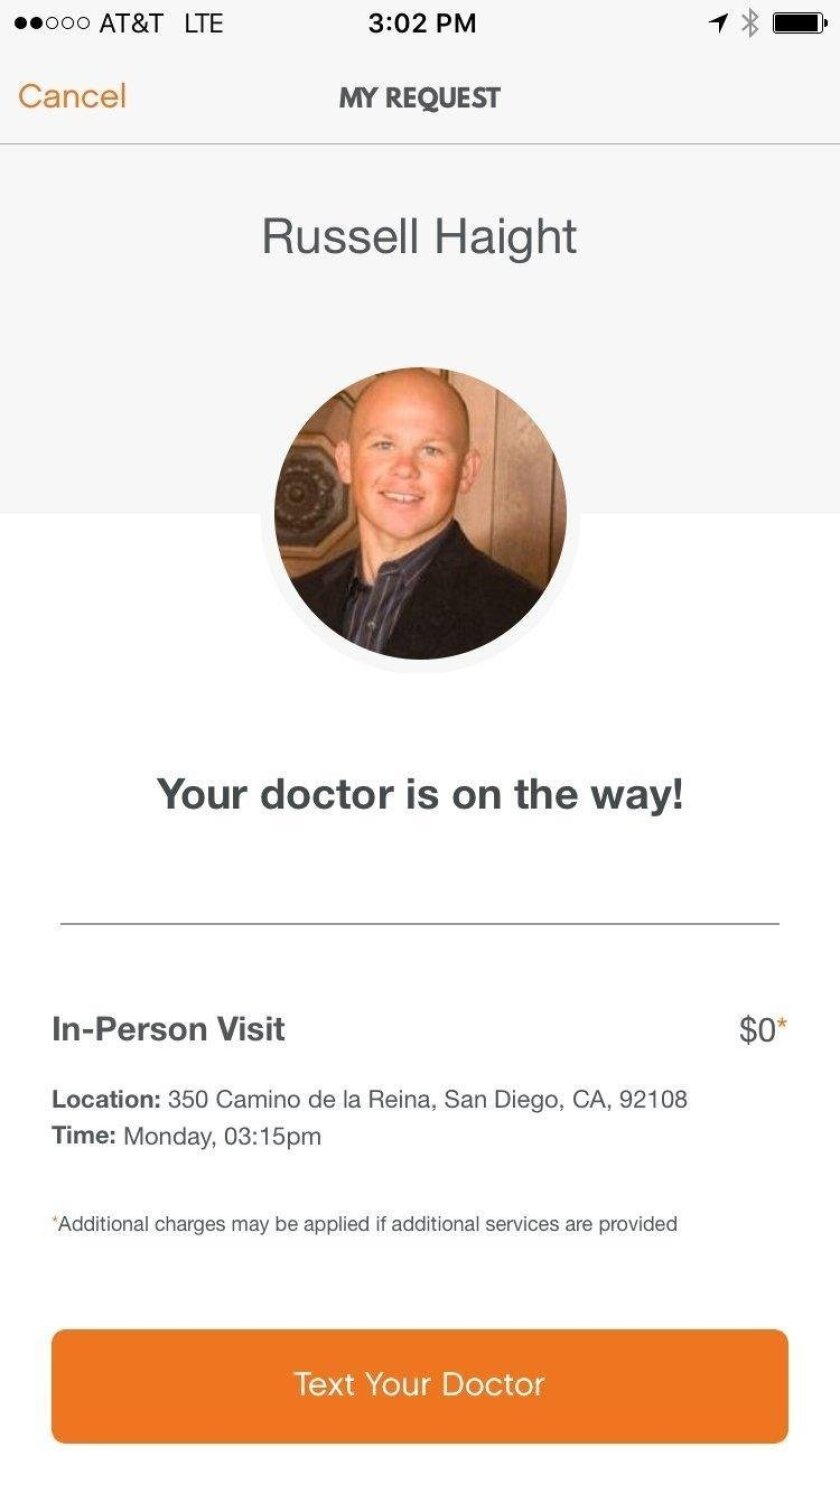 The Pager app matches a patient to a doctor and shows when the clinician is en route.